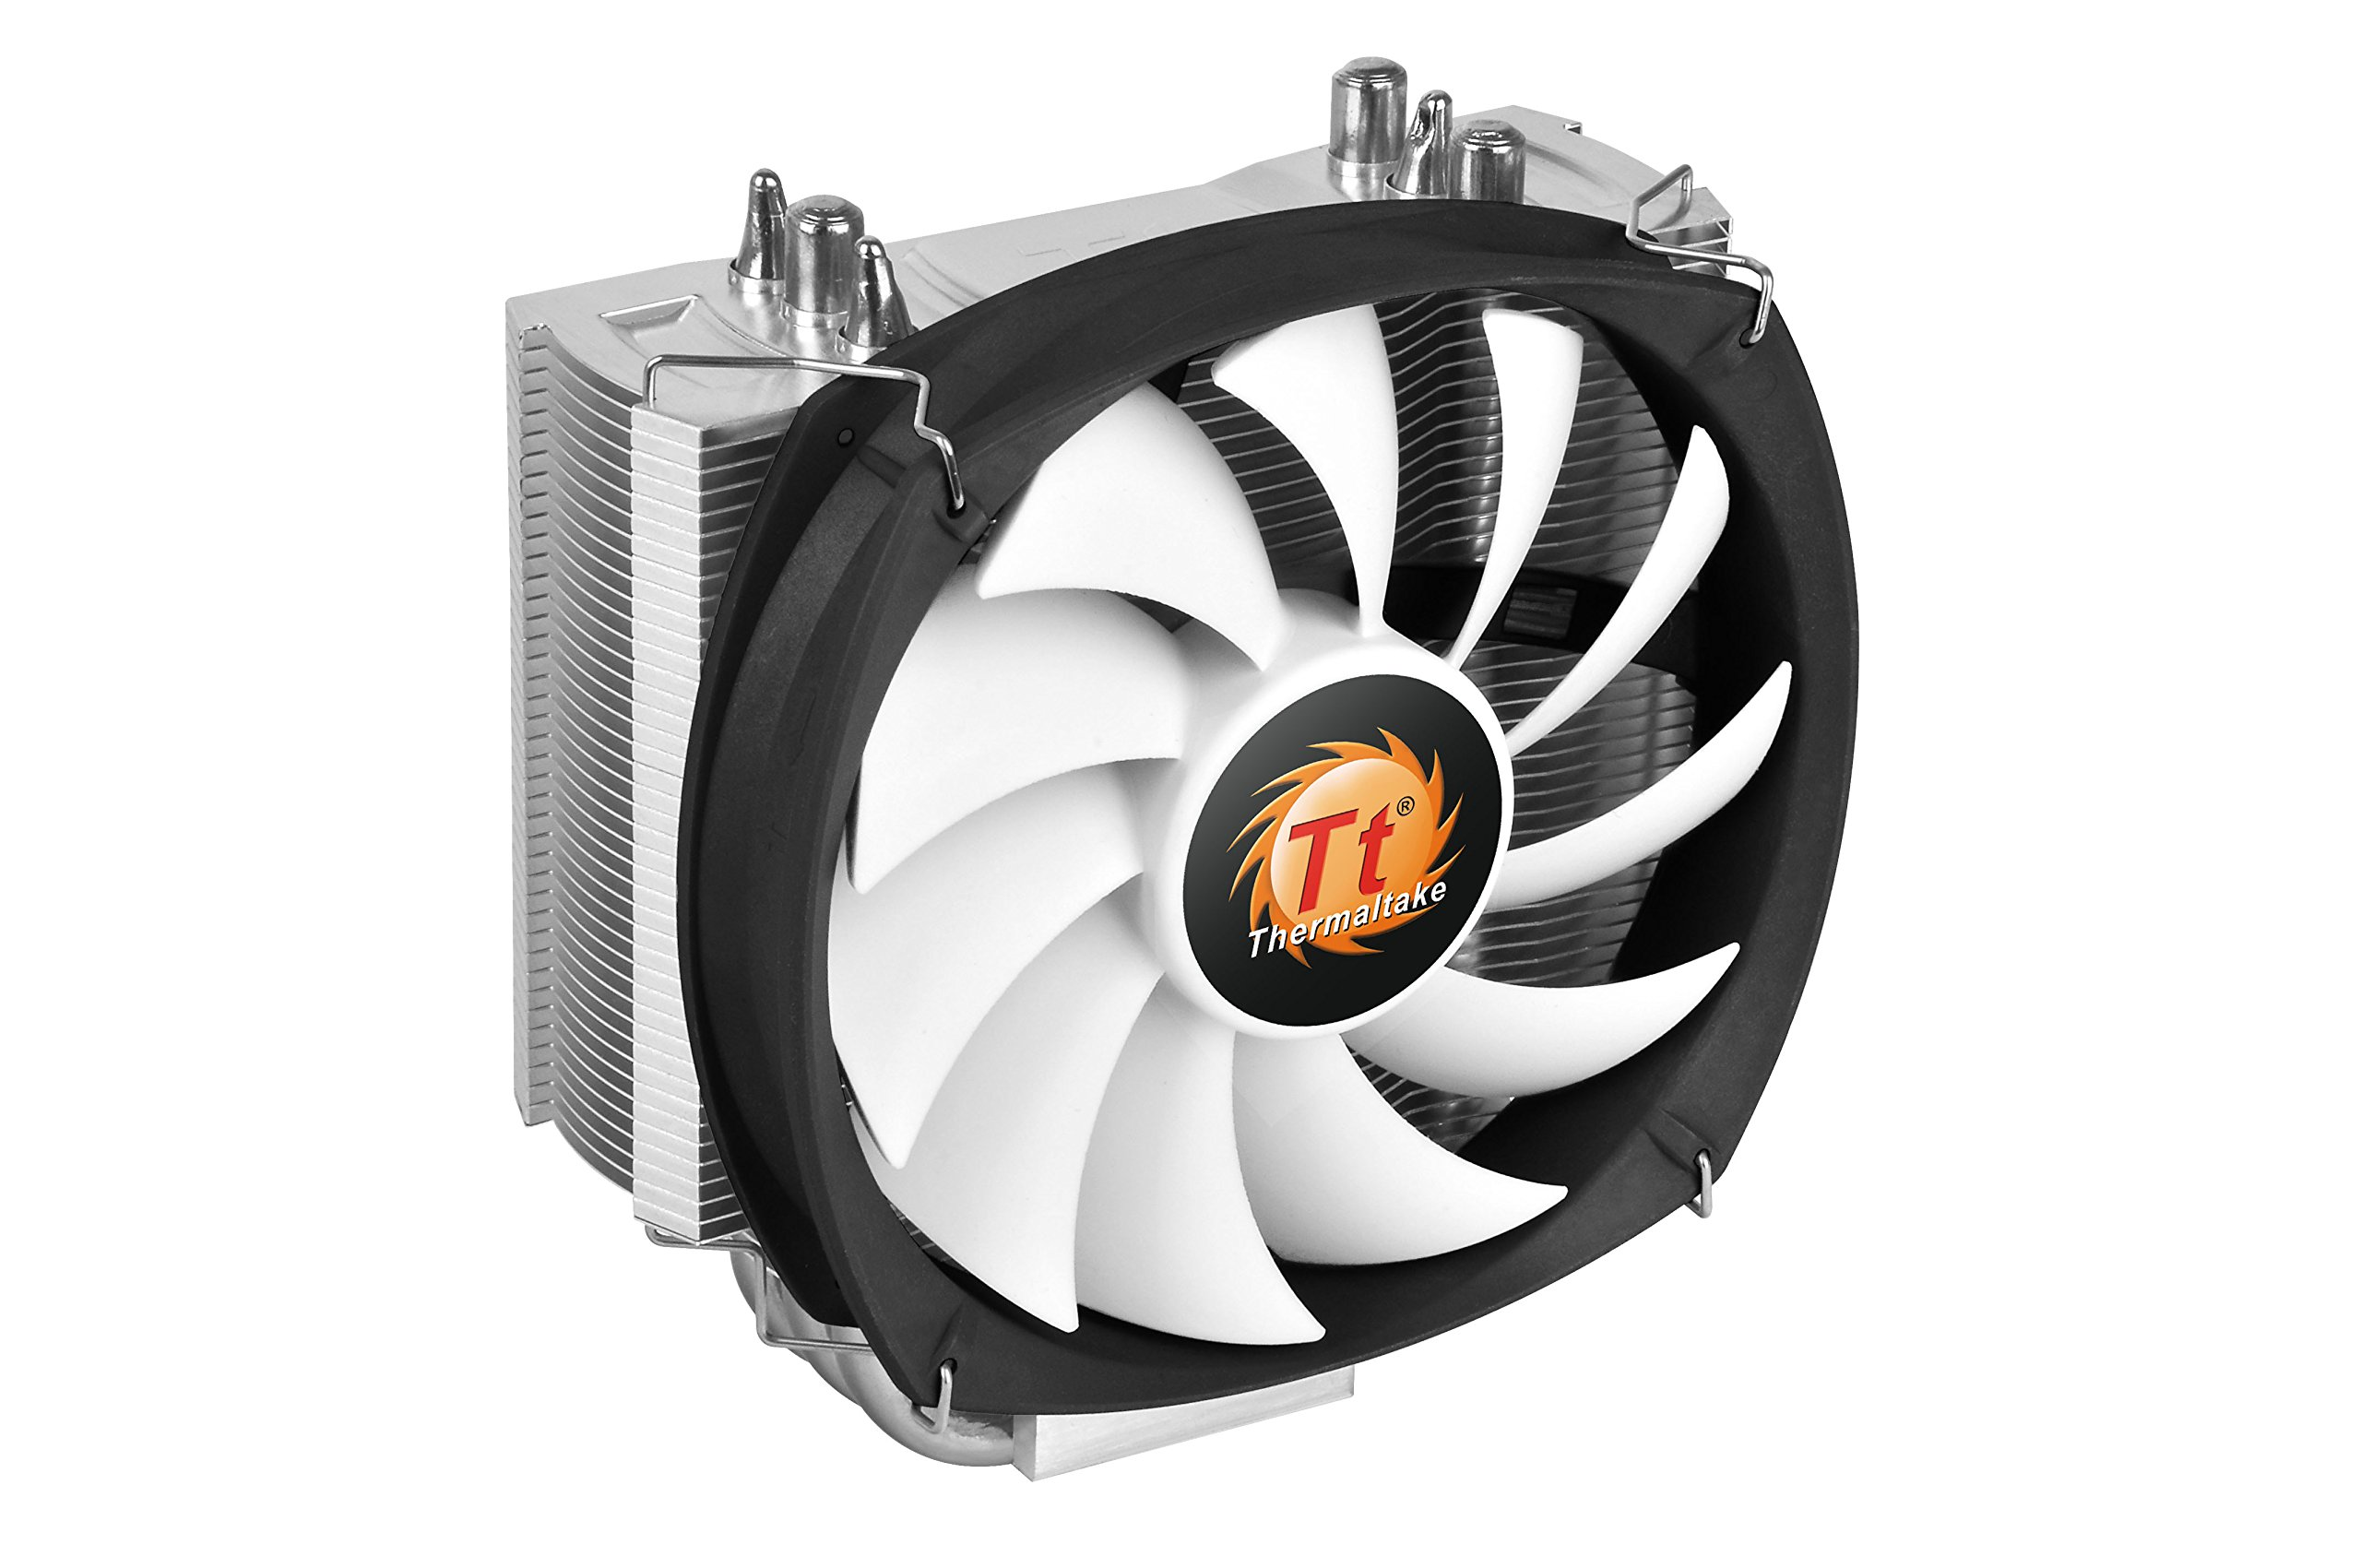 Thermaltake Frio Silent 12 150w Intel/amd 120mm Cpu Cooler C